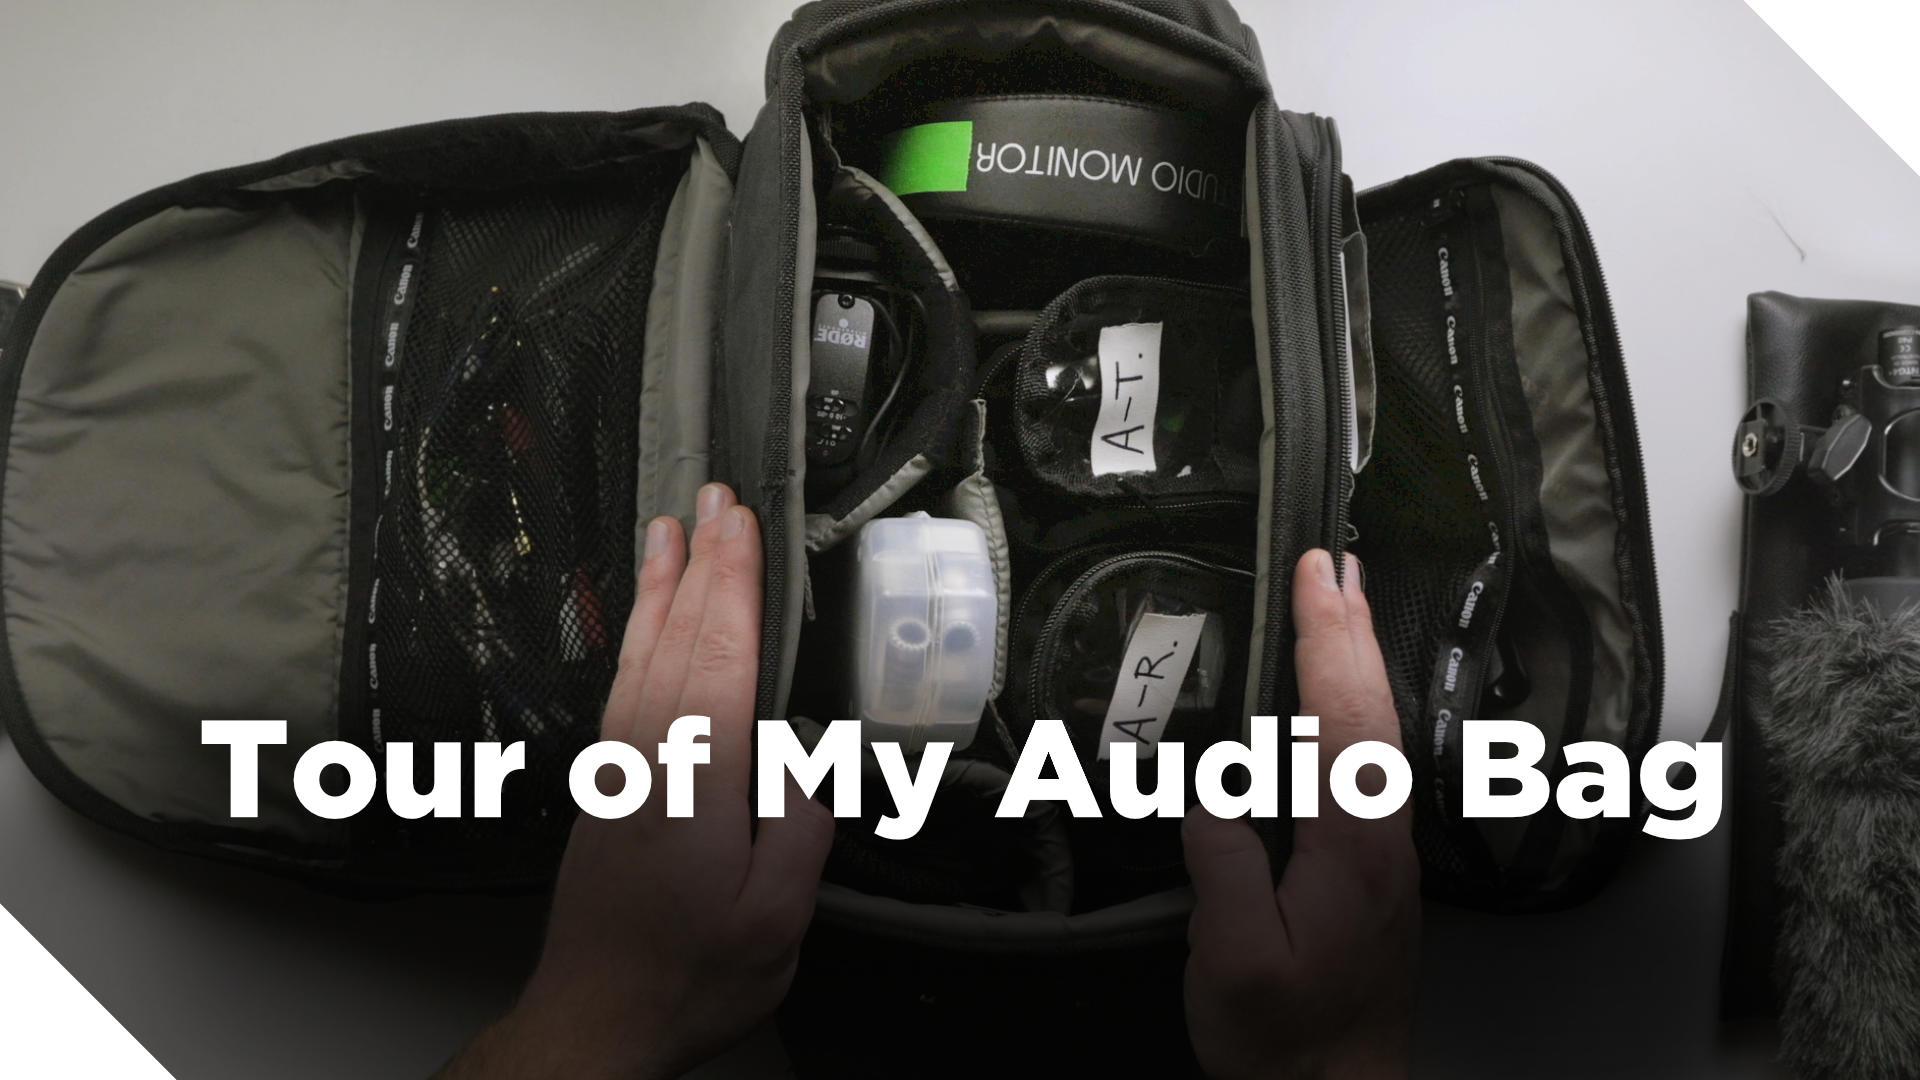 Video Tour of My Audio Bag